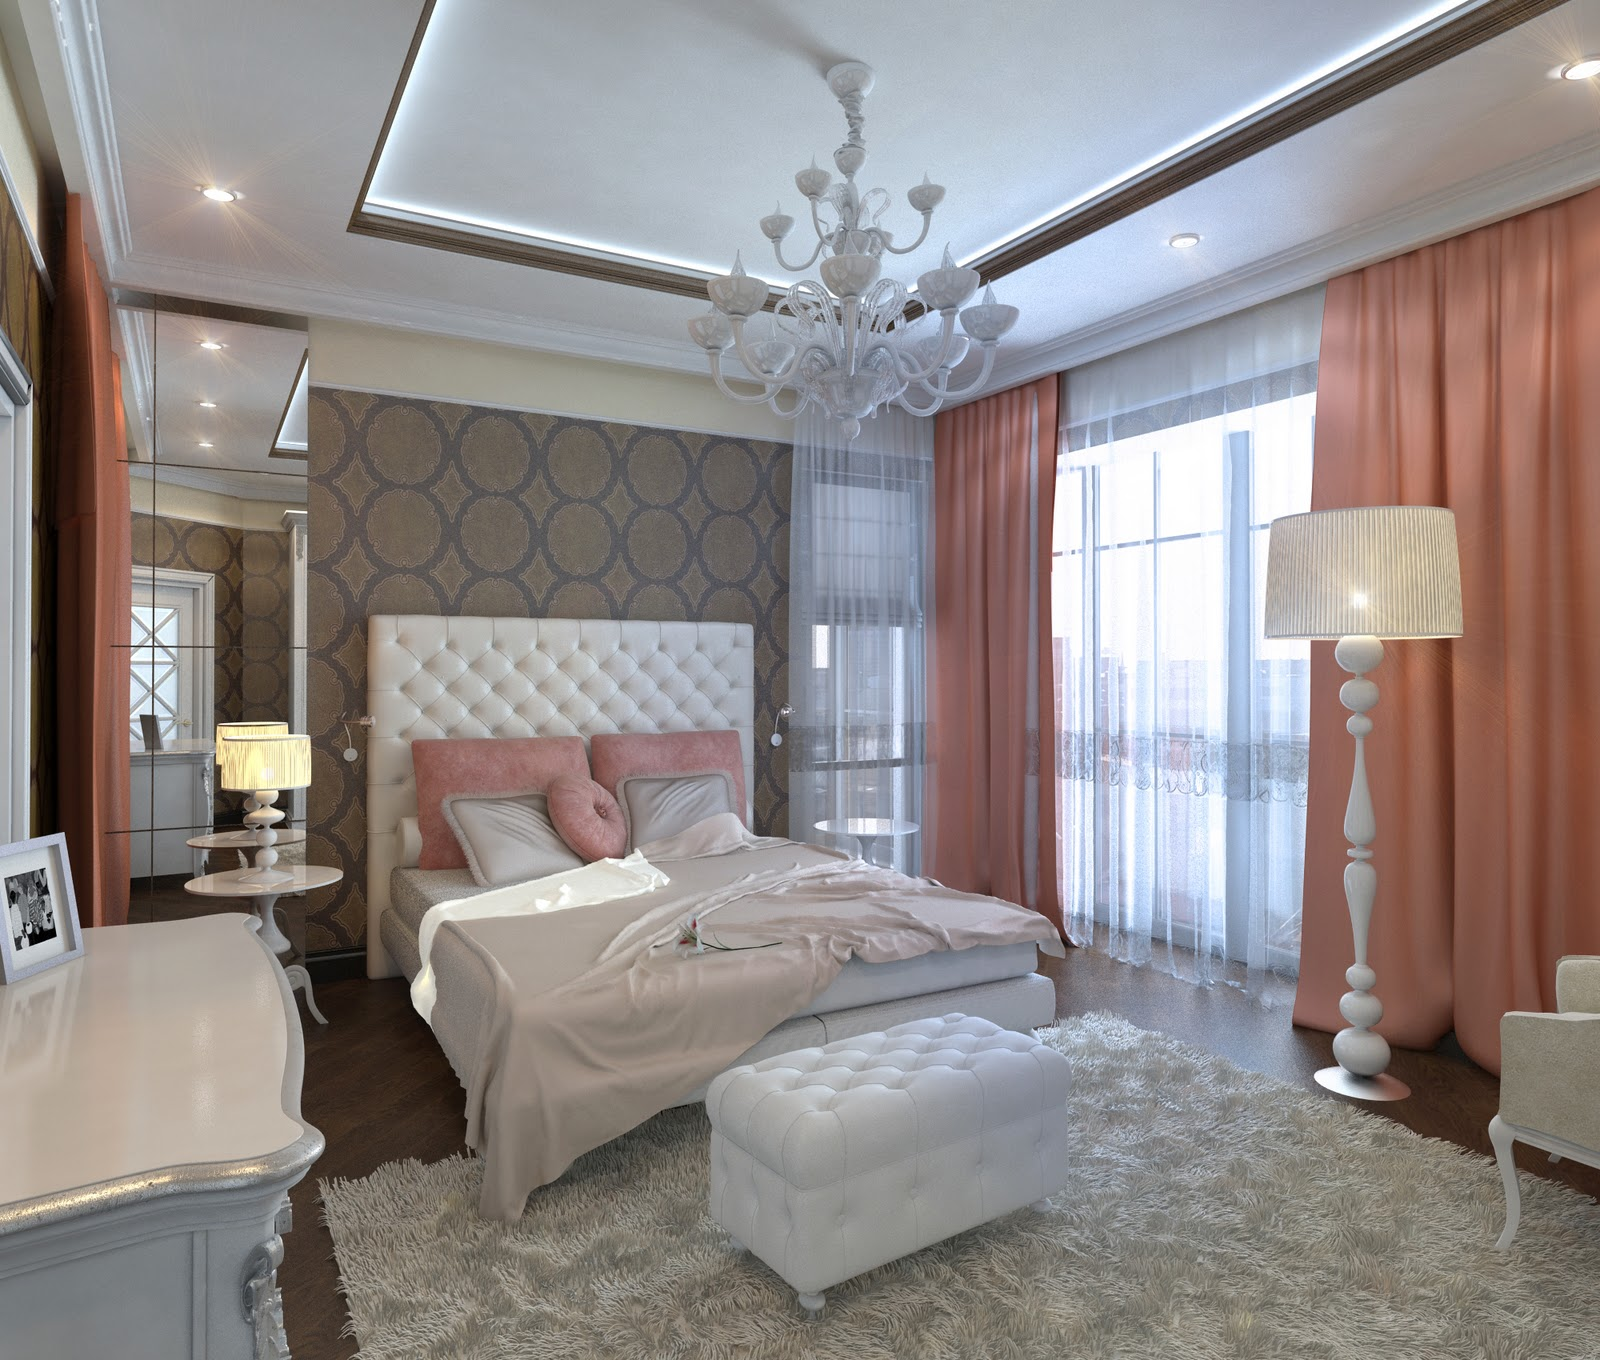 3d design bedroom art deco Art deco bedroom ideas